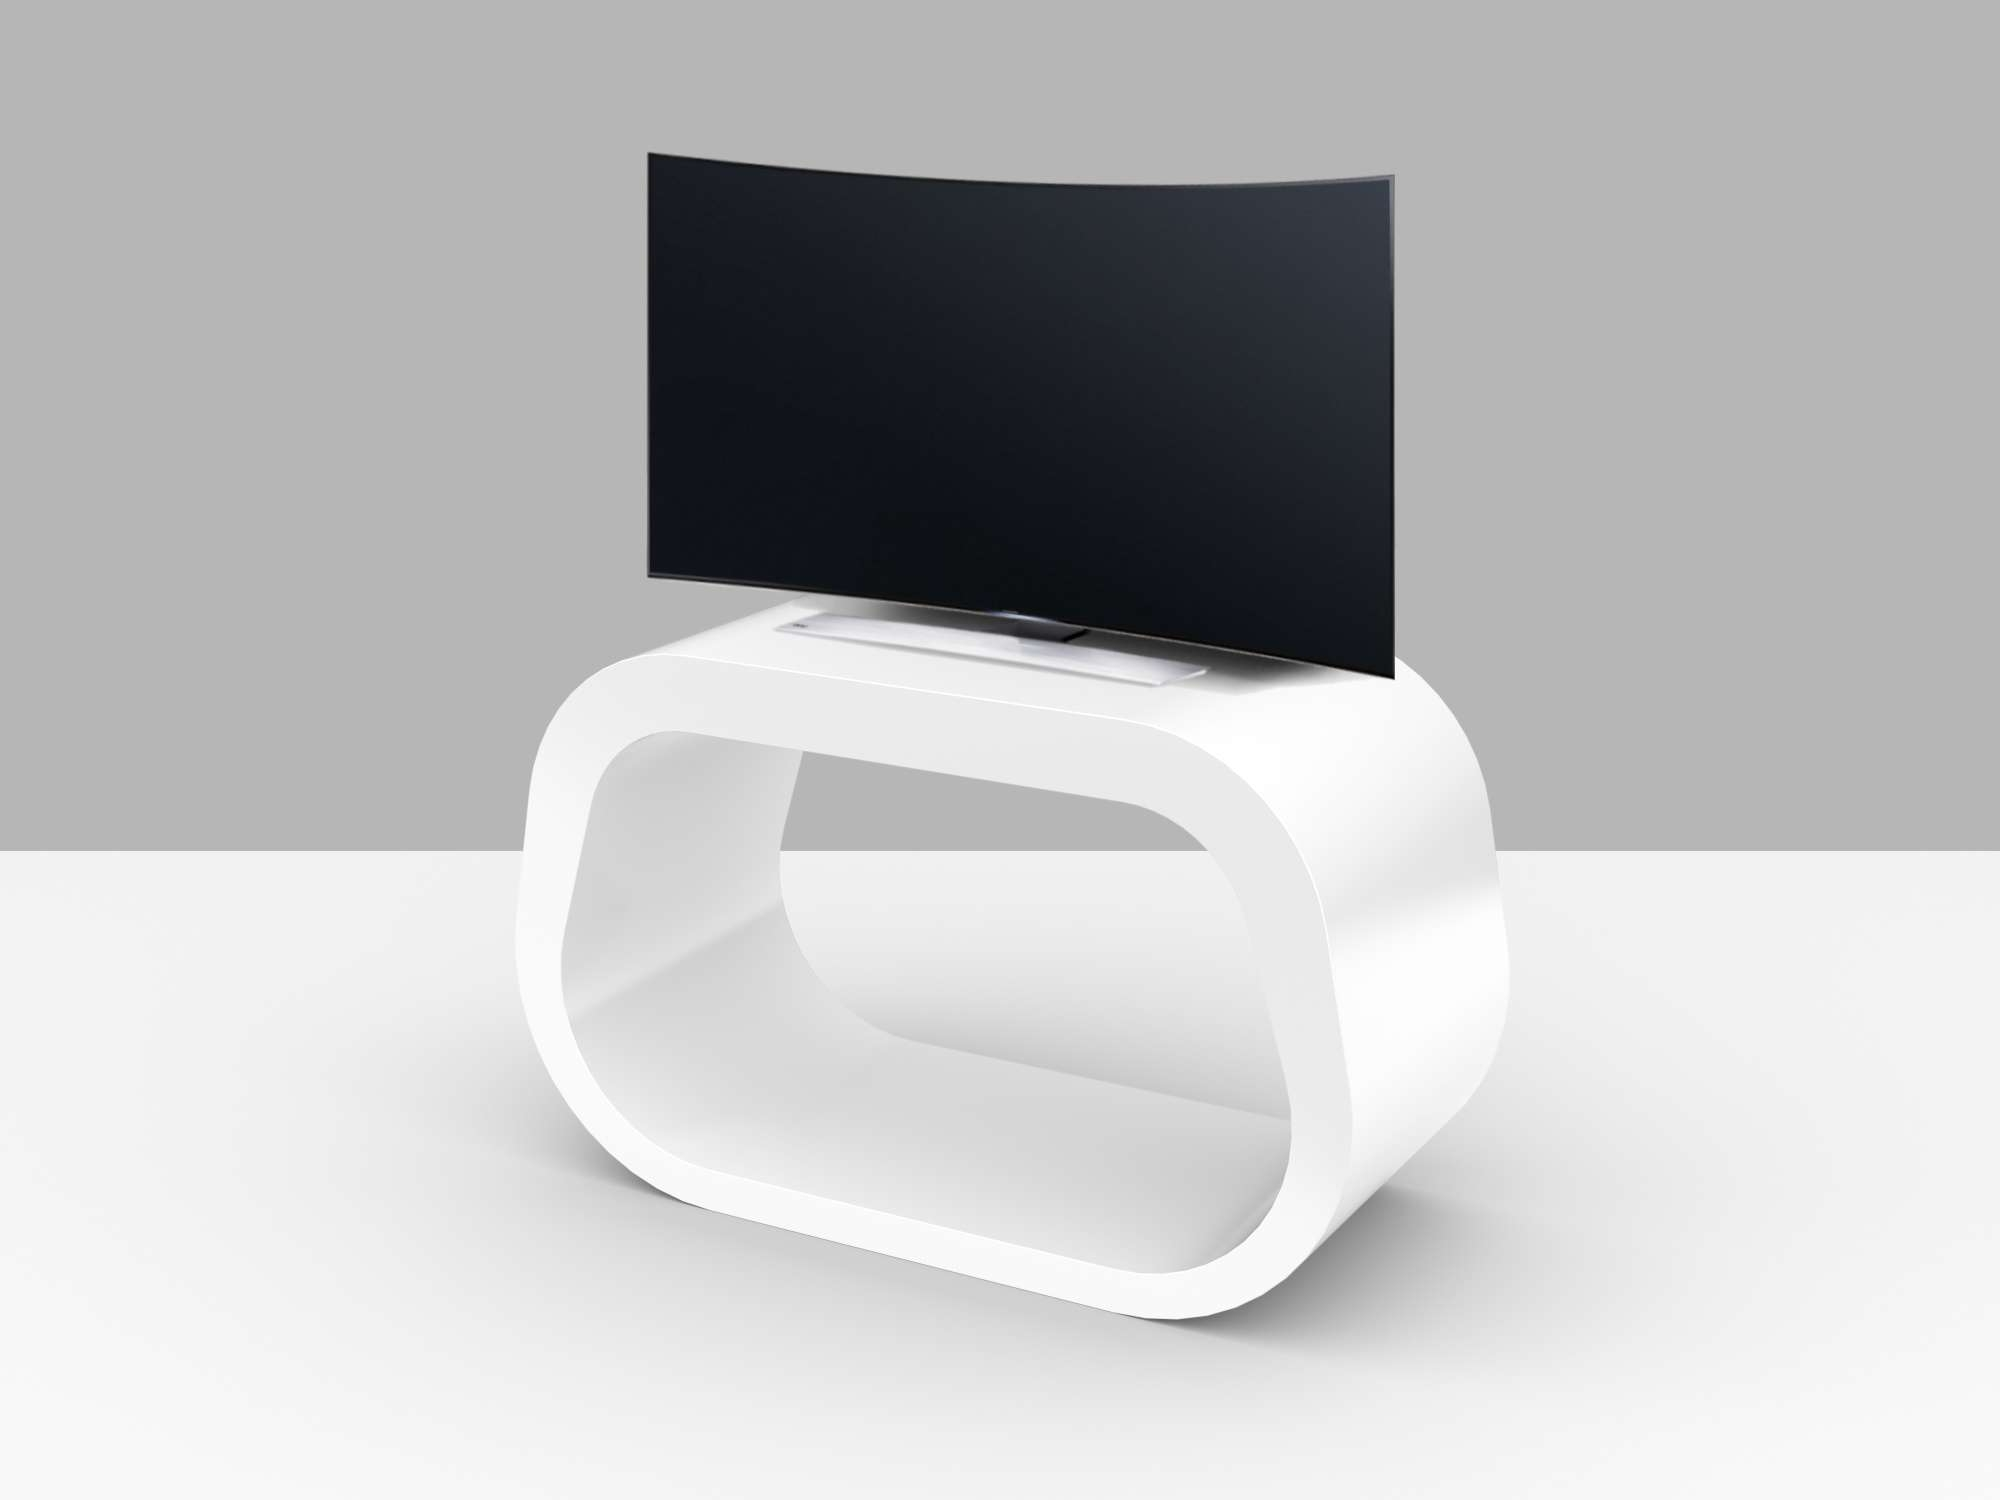 Custom Tv Stands | Custom Made Media Units – Zespoke Inside White Gloss Oval Tv Stands (View 8 of 20)